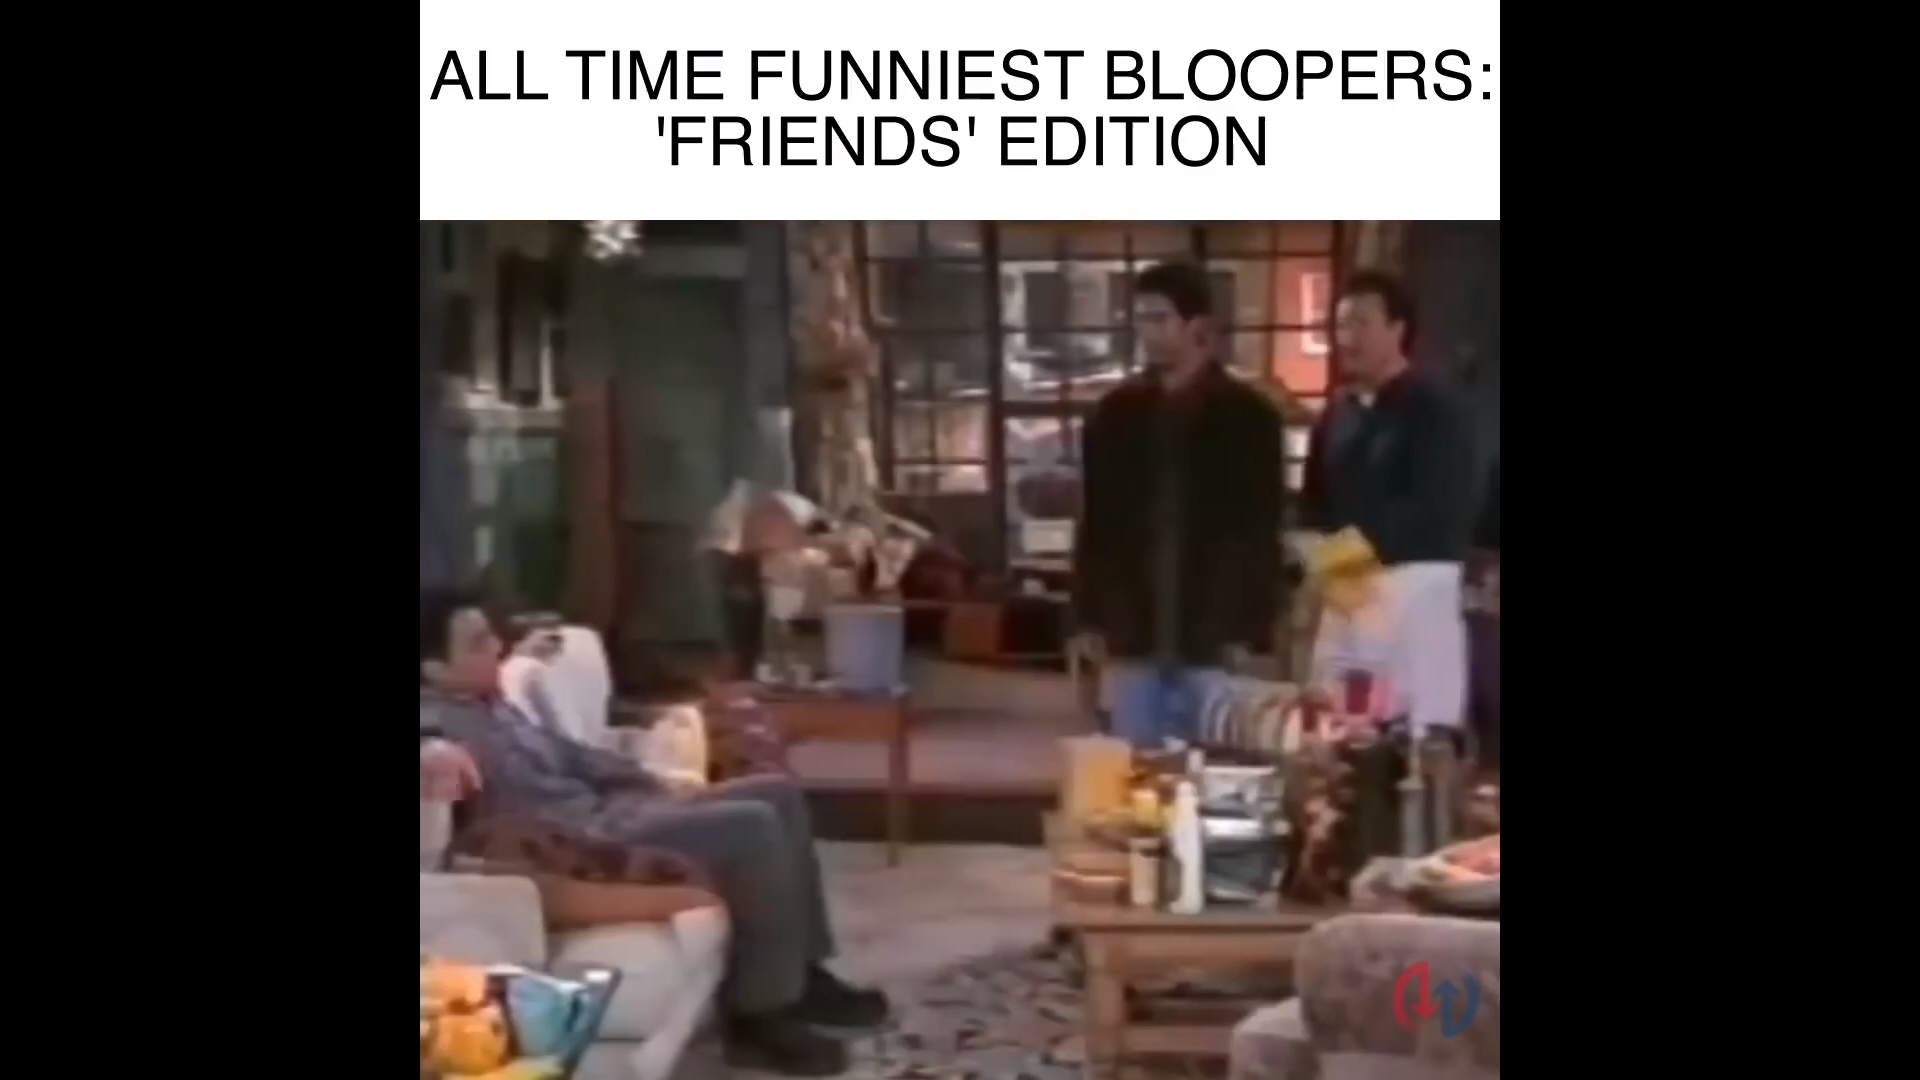 The funniest bloopers from Friends the tv show! Here are some of the funniest moments on Friends. This is a list of the funniest friends quotes and the best episodes of Friends the tv series.